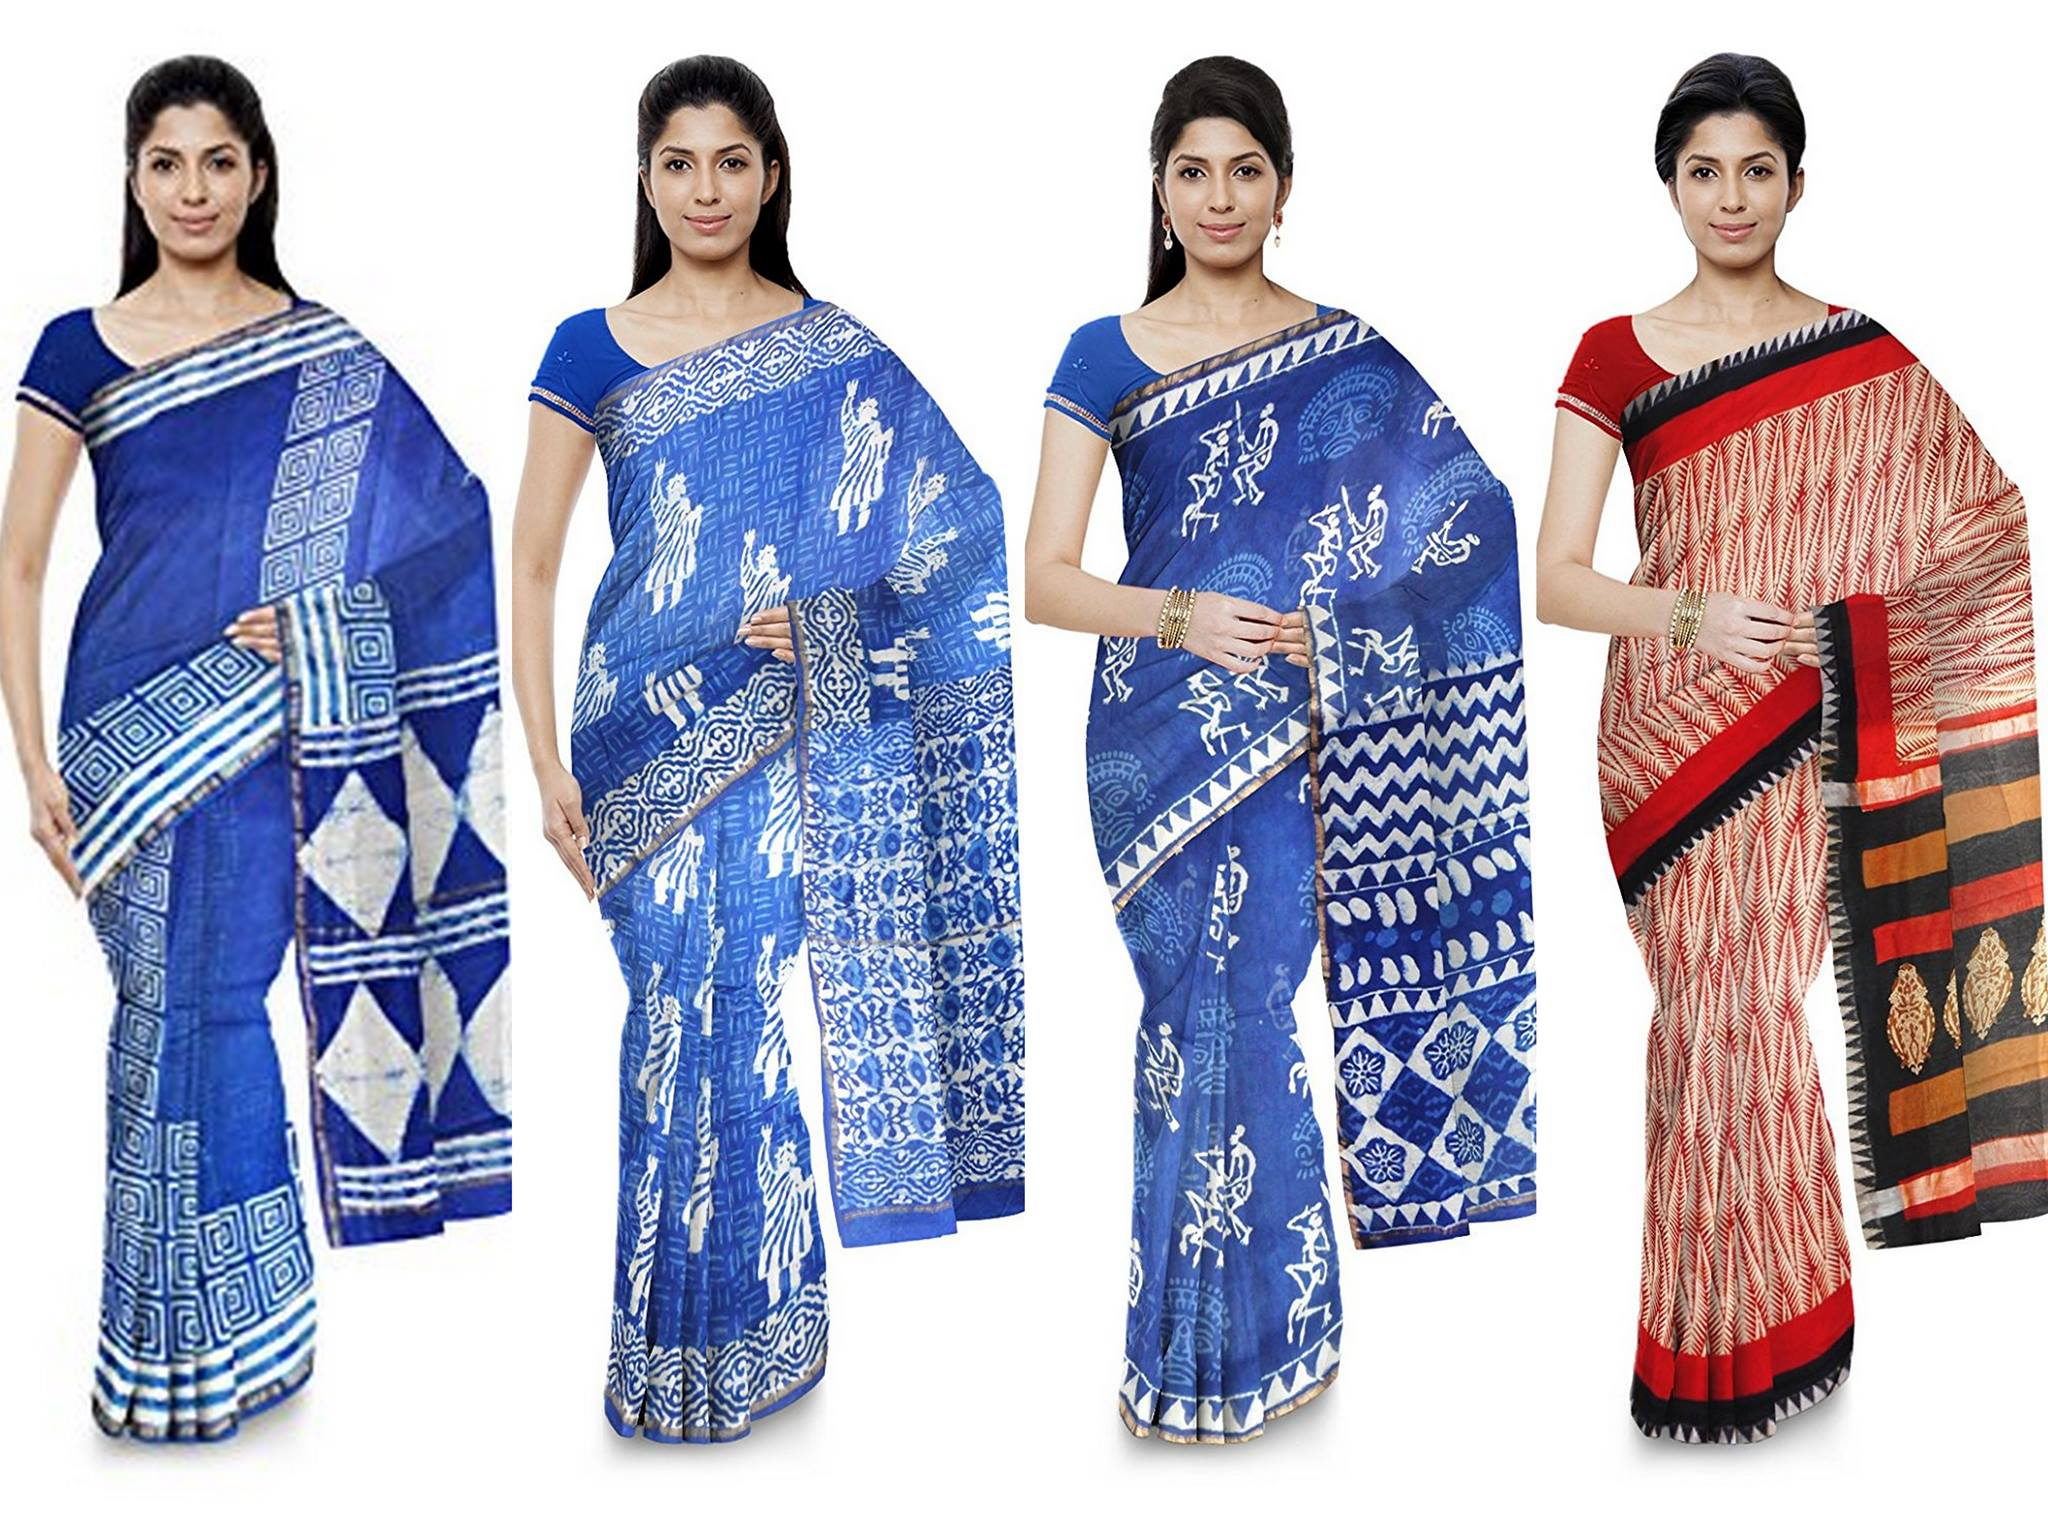 Indian Saree Manufacturers boosting home production capacity